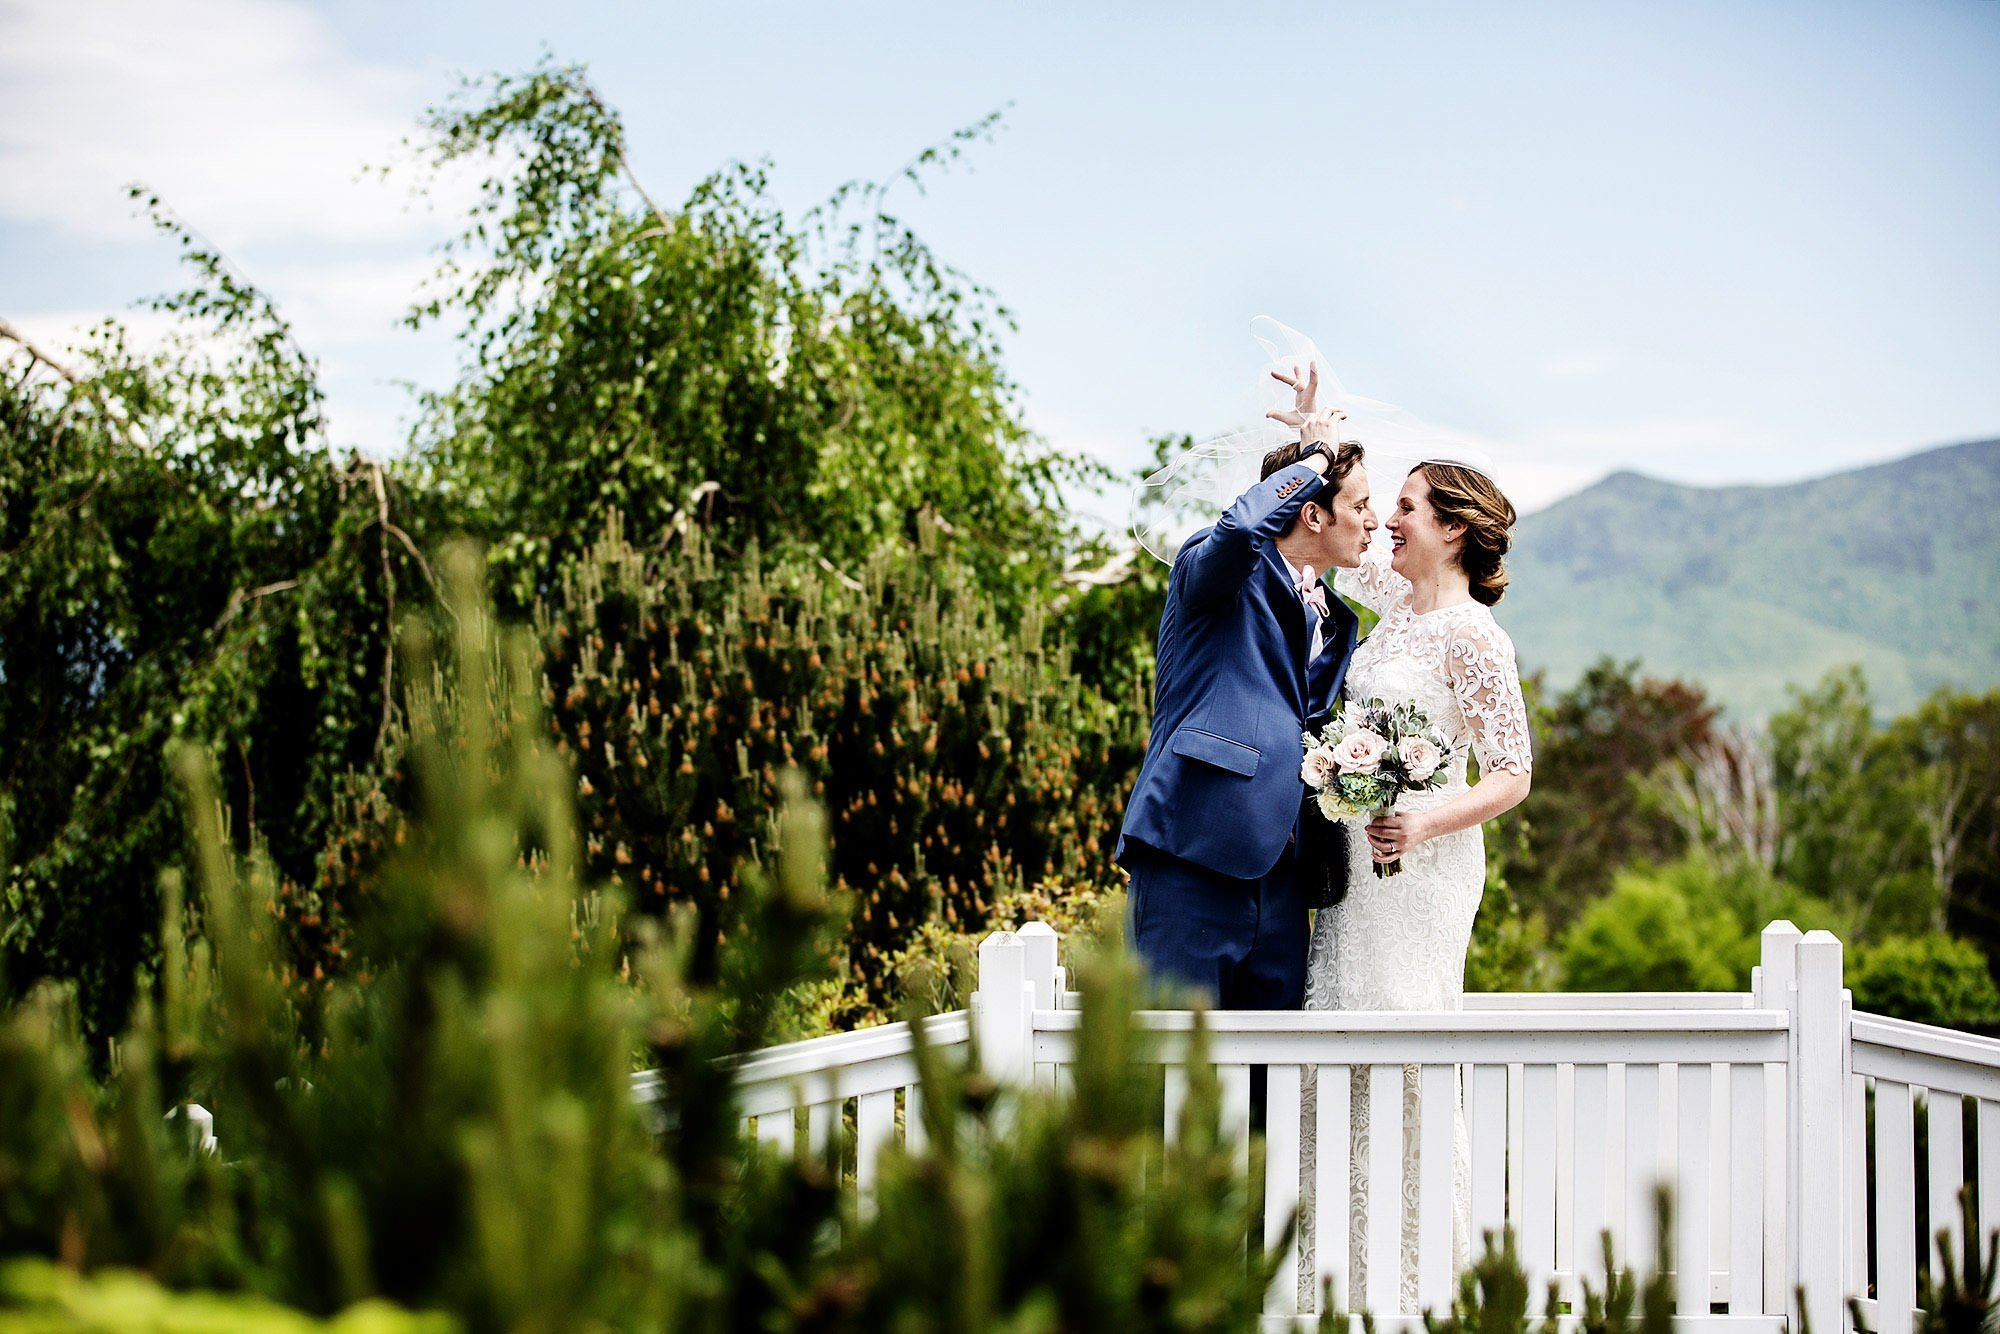 With the White Mountains in the background, the bride and groom share their First Look on their Mountain View Grand Wedding day.